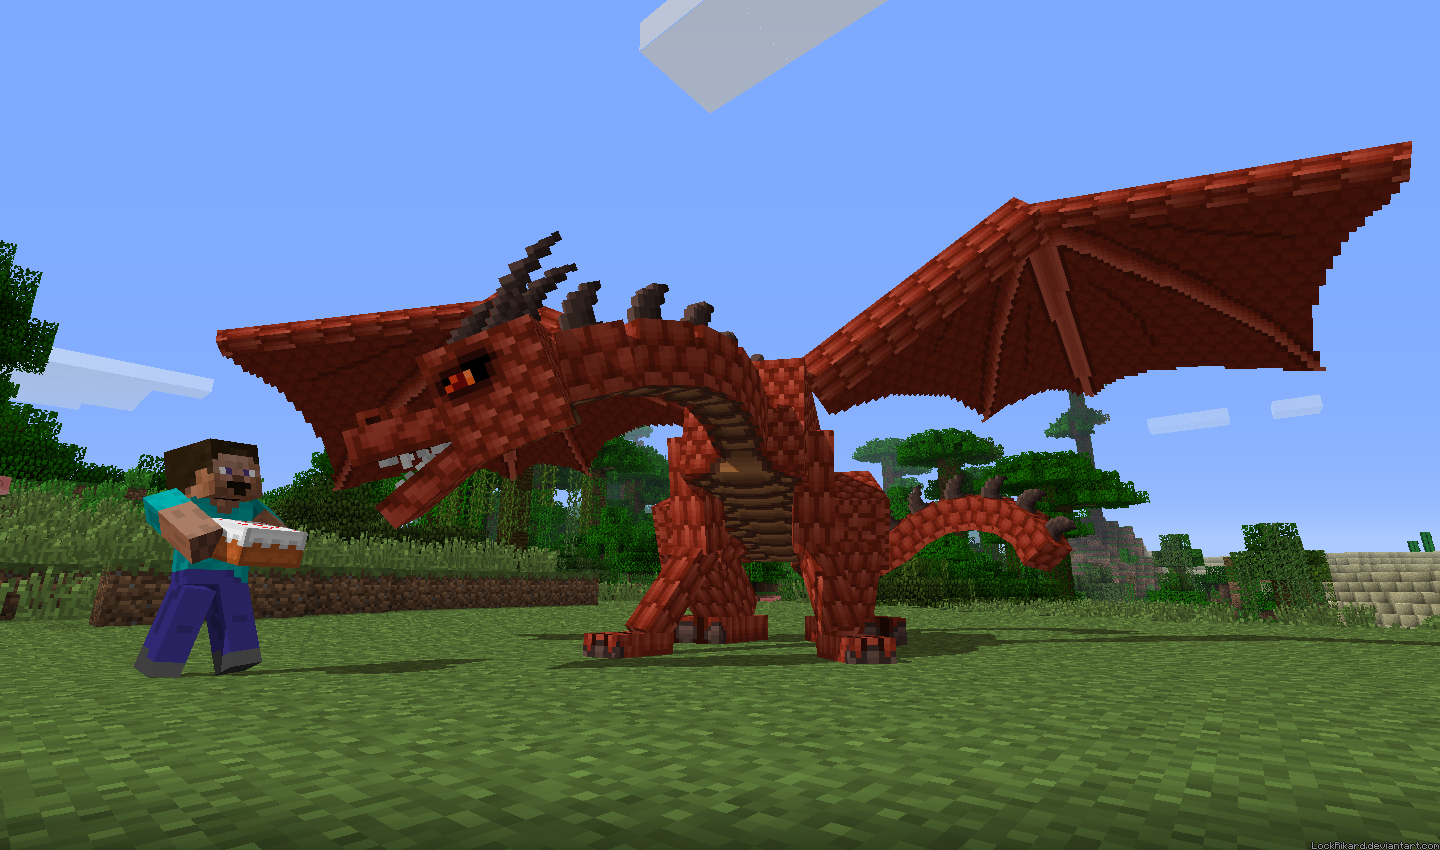 Minecraft Nether Dragon J A C O B Pinterest Spiel - Minecraft dragon spiele